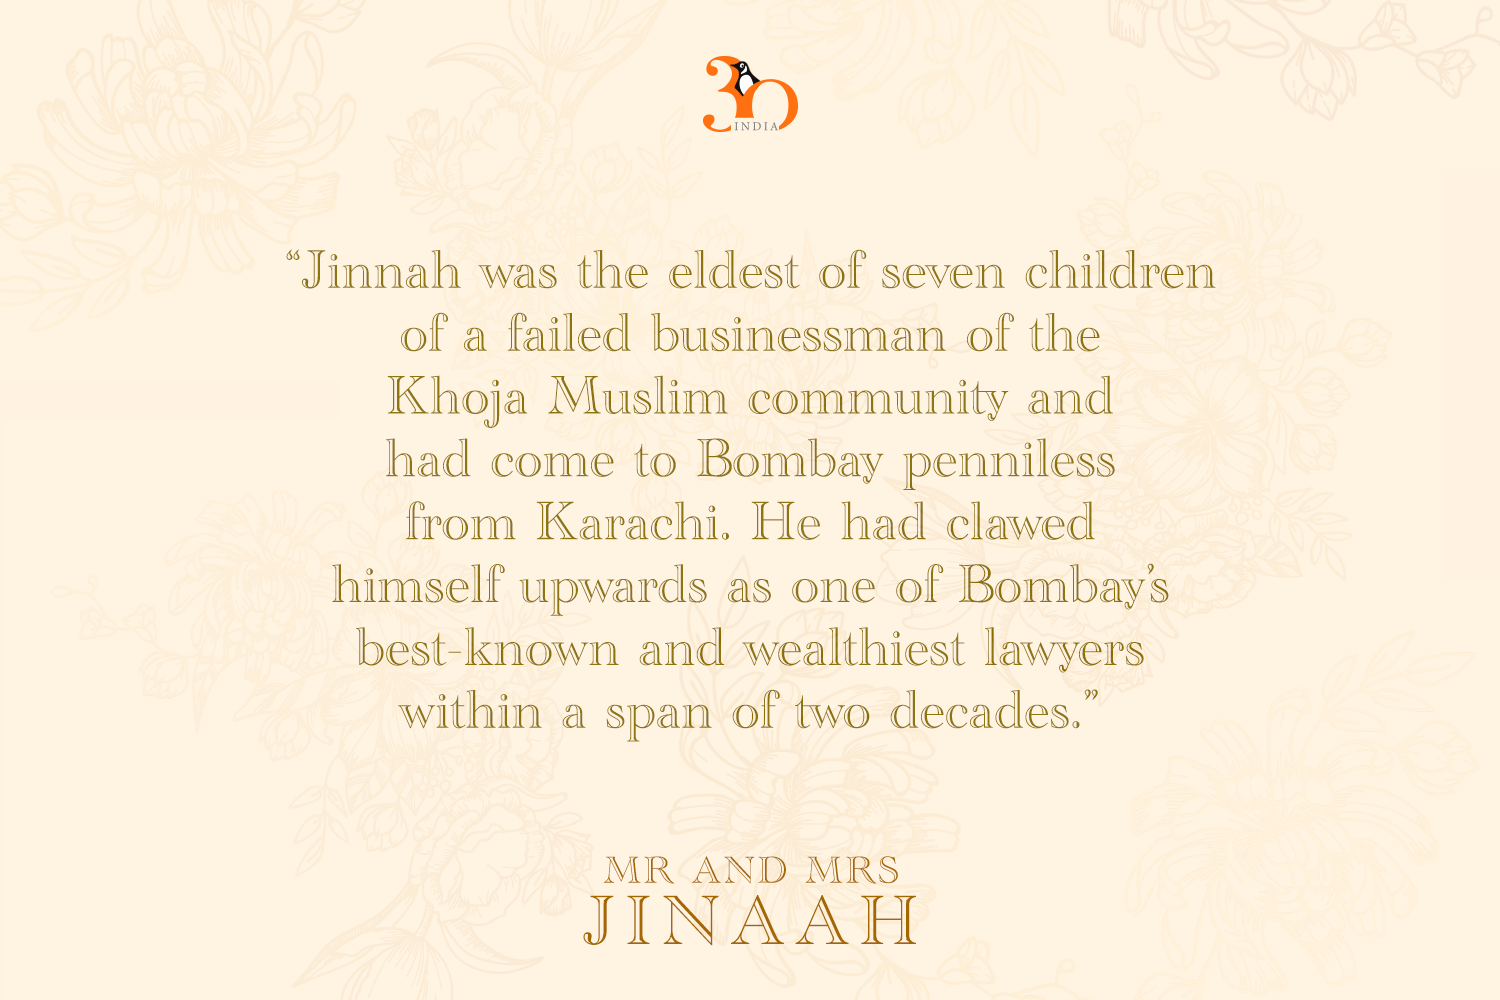 jinnah-blog-quote-number-2s.png